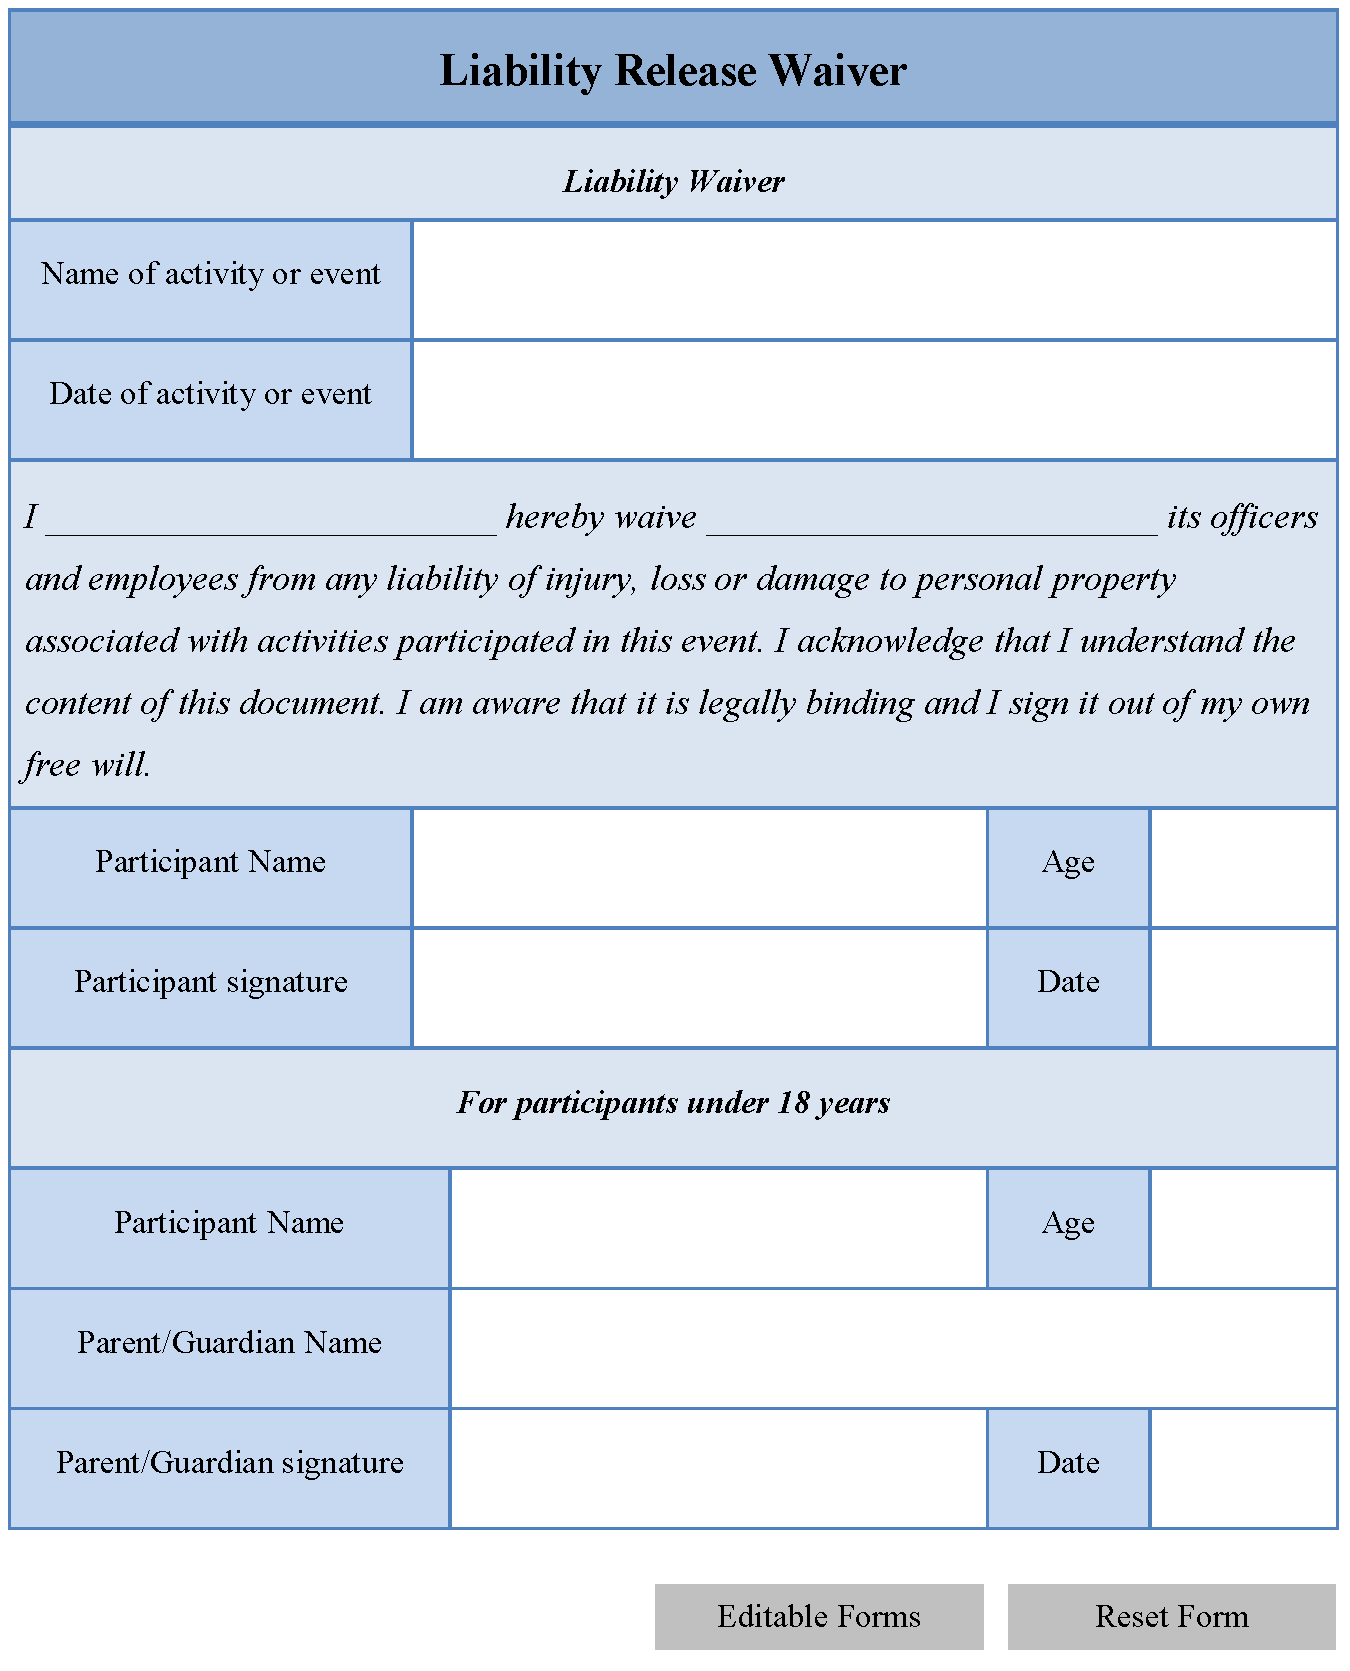 Liability Waiver Form for